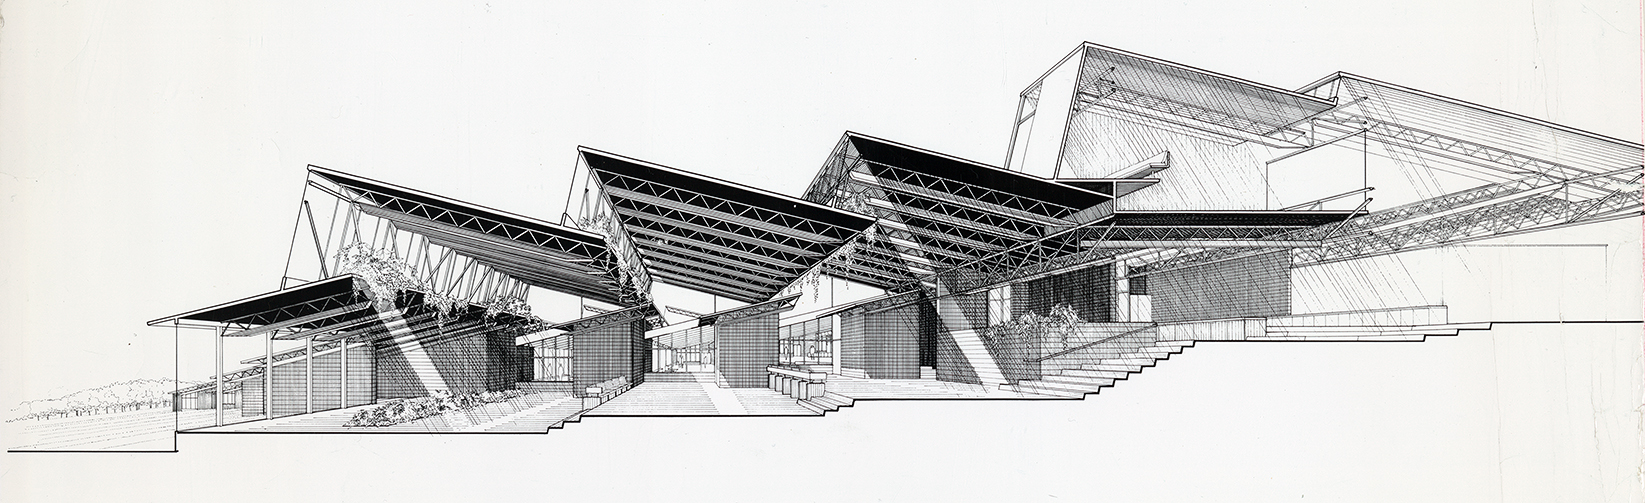 Chorley Elementary School, Middletown, New York.  Section Perspective Rendering.